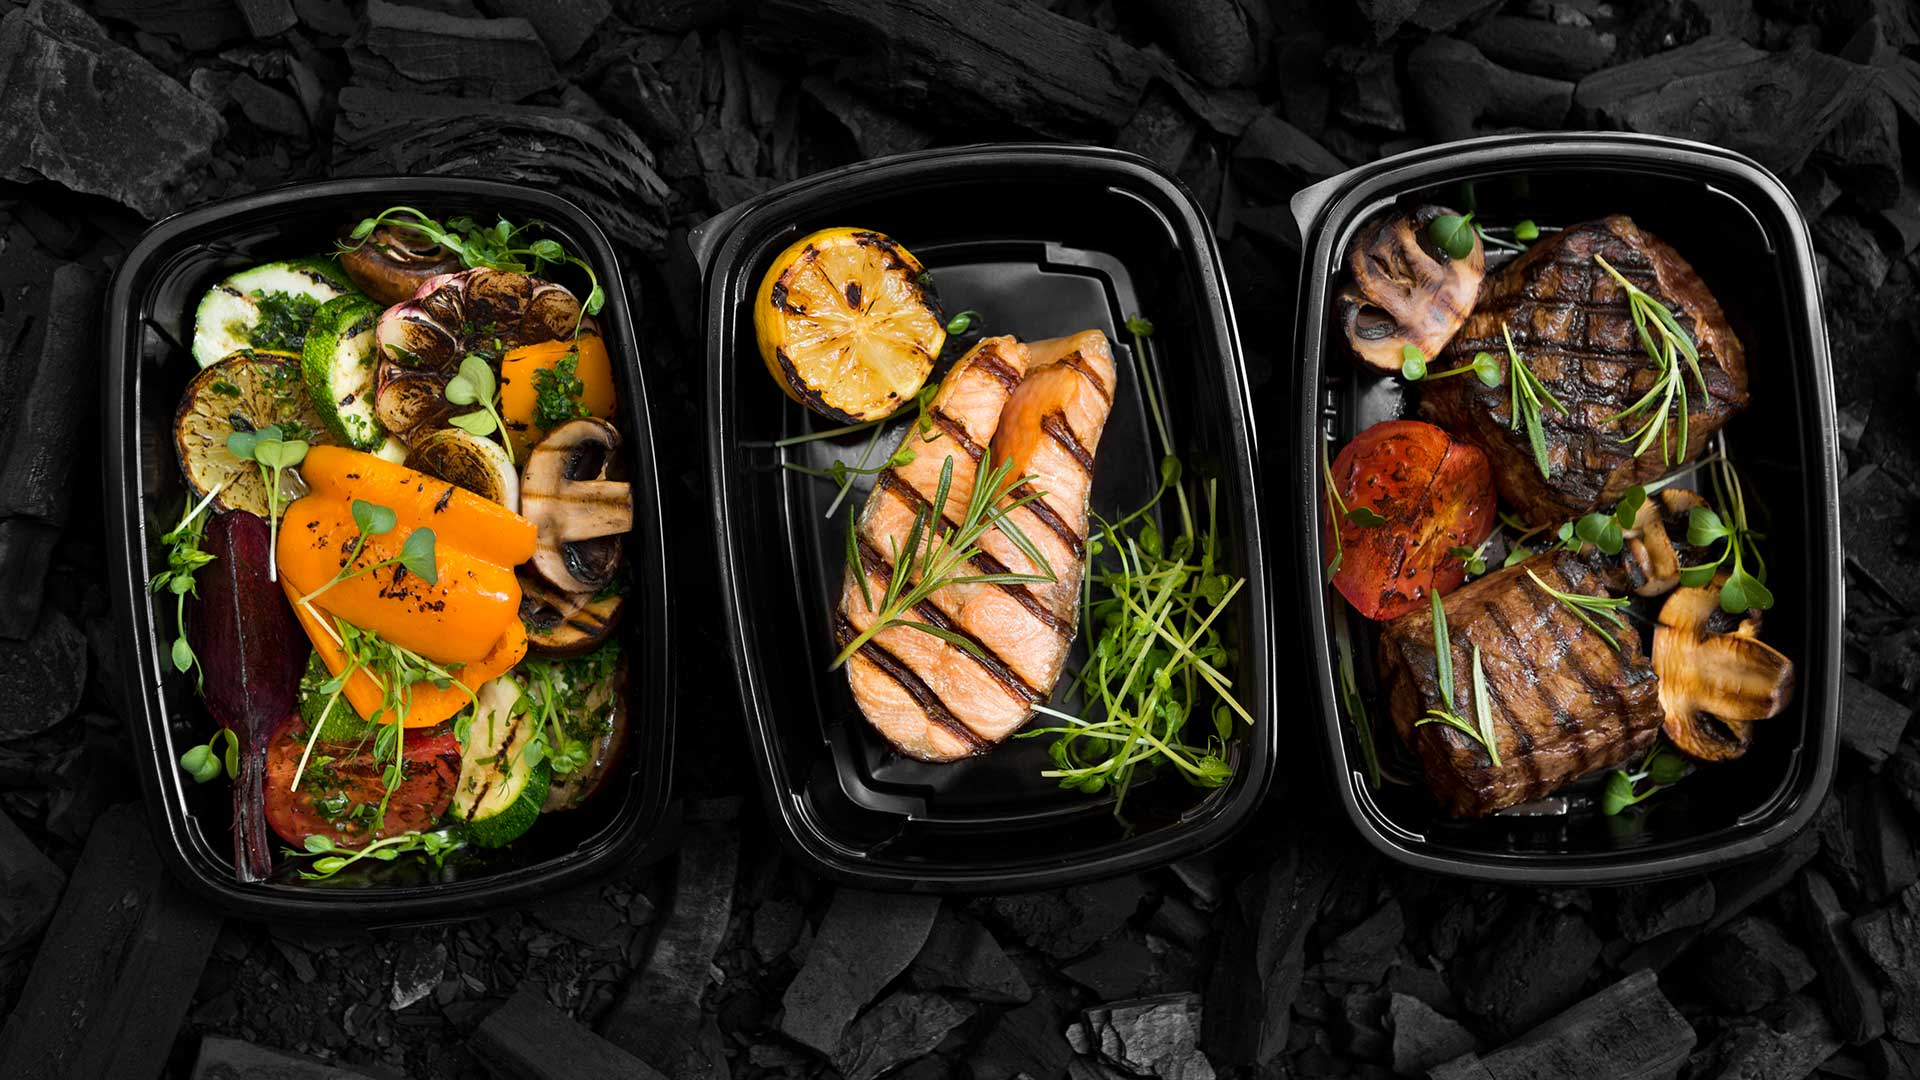 healthy meal box on charcoal